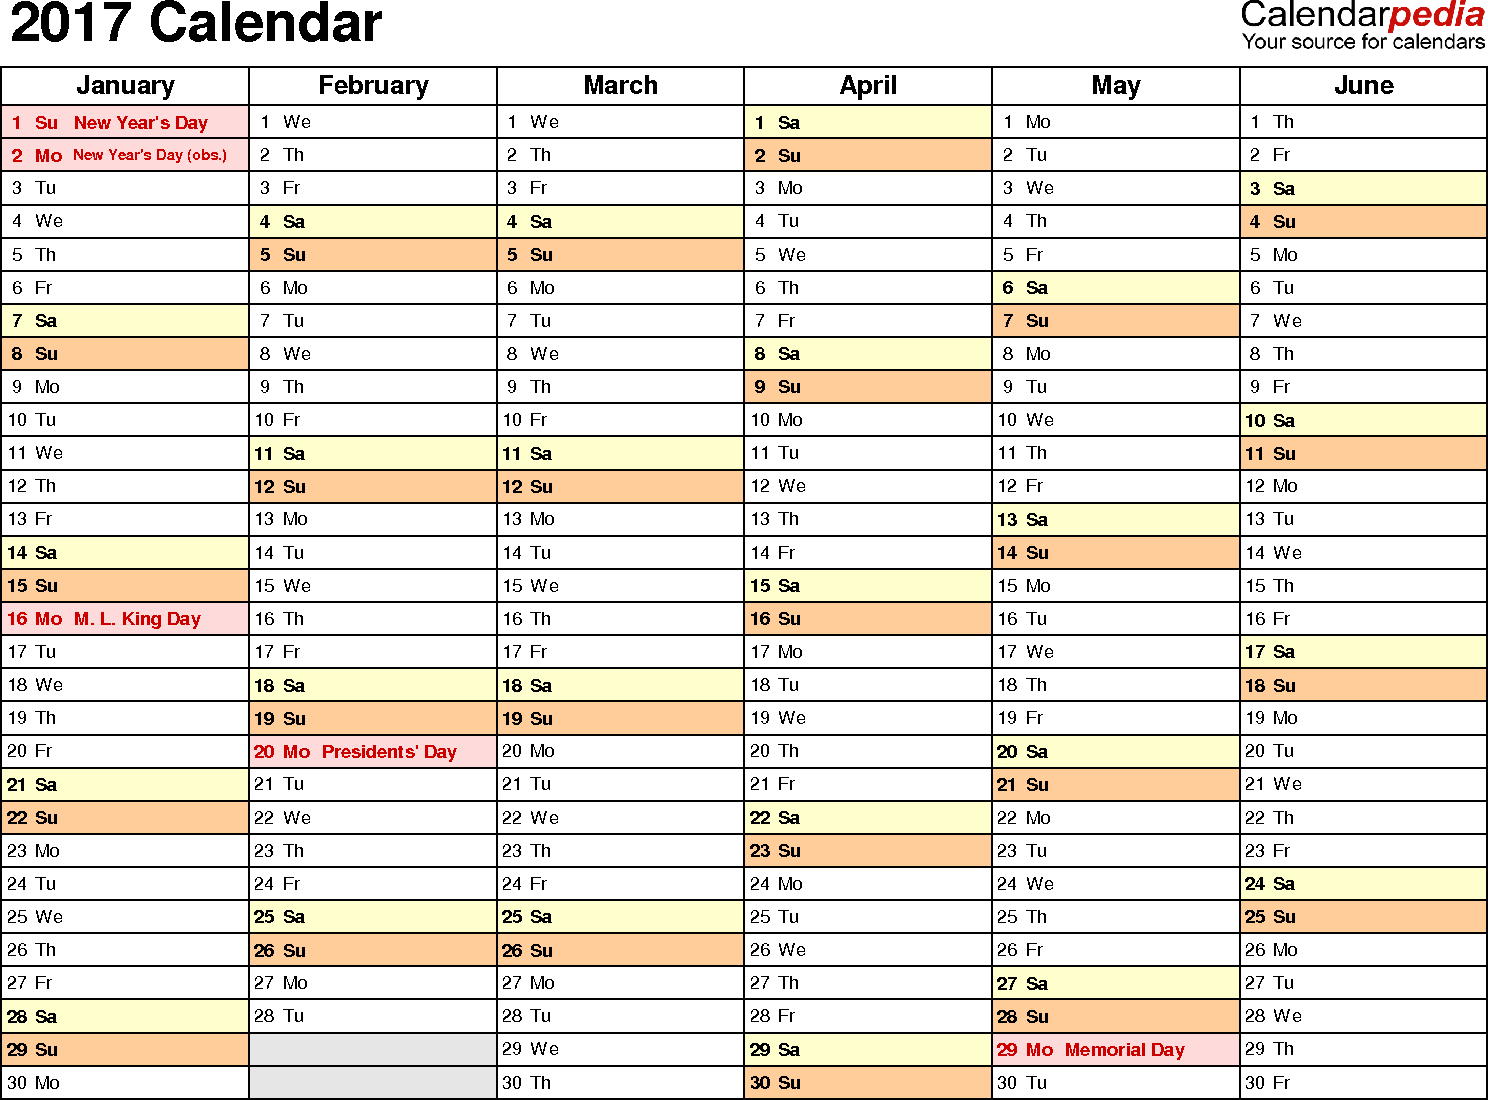 Ediblewildsus  Remarkable  Calendar  Download  Free Printable Excel Templates Xls With Goodlooking Template   Calendar For Excel Months Horizontally  Pages Landscape Orientation With Cool Download Excel Free Full Version Also Digital Signature Excel In Addition Add Text To Cell Excel And Excel Macro Insert Row As Well As Excel Driving Naperville Additionally Printing Labels From Excel  From Calendarpediacom With Ediblewildsus  Goodlooking  Calendar  Download  Free Printable Excel Templates Xls With Cool Template   Calendar For Excel Months Horizontally  Pages Landscape Orientation And Remarkable Download Excel Free Full Version Also Digital Signature Excel In Addition Add Text To Cell Excel From Calendarpediacom